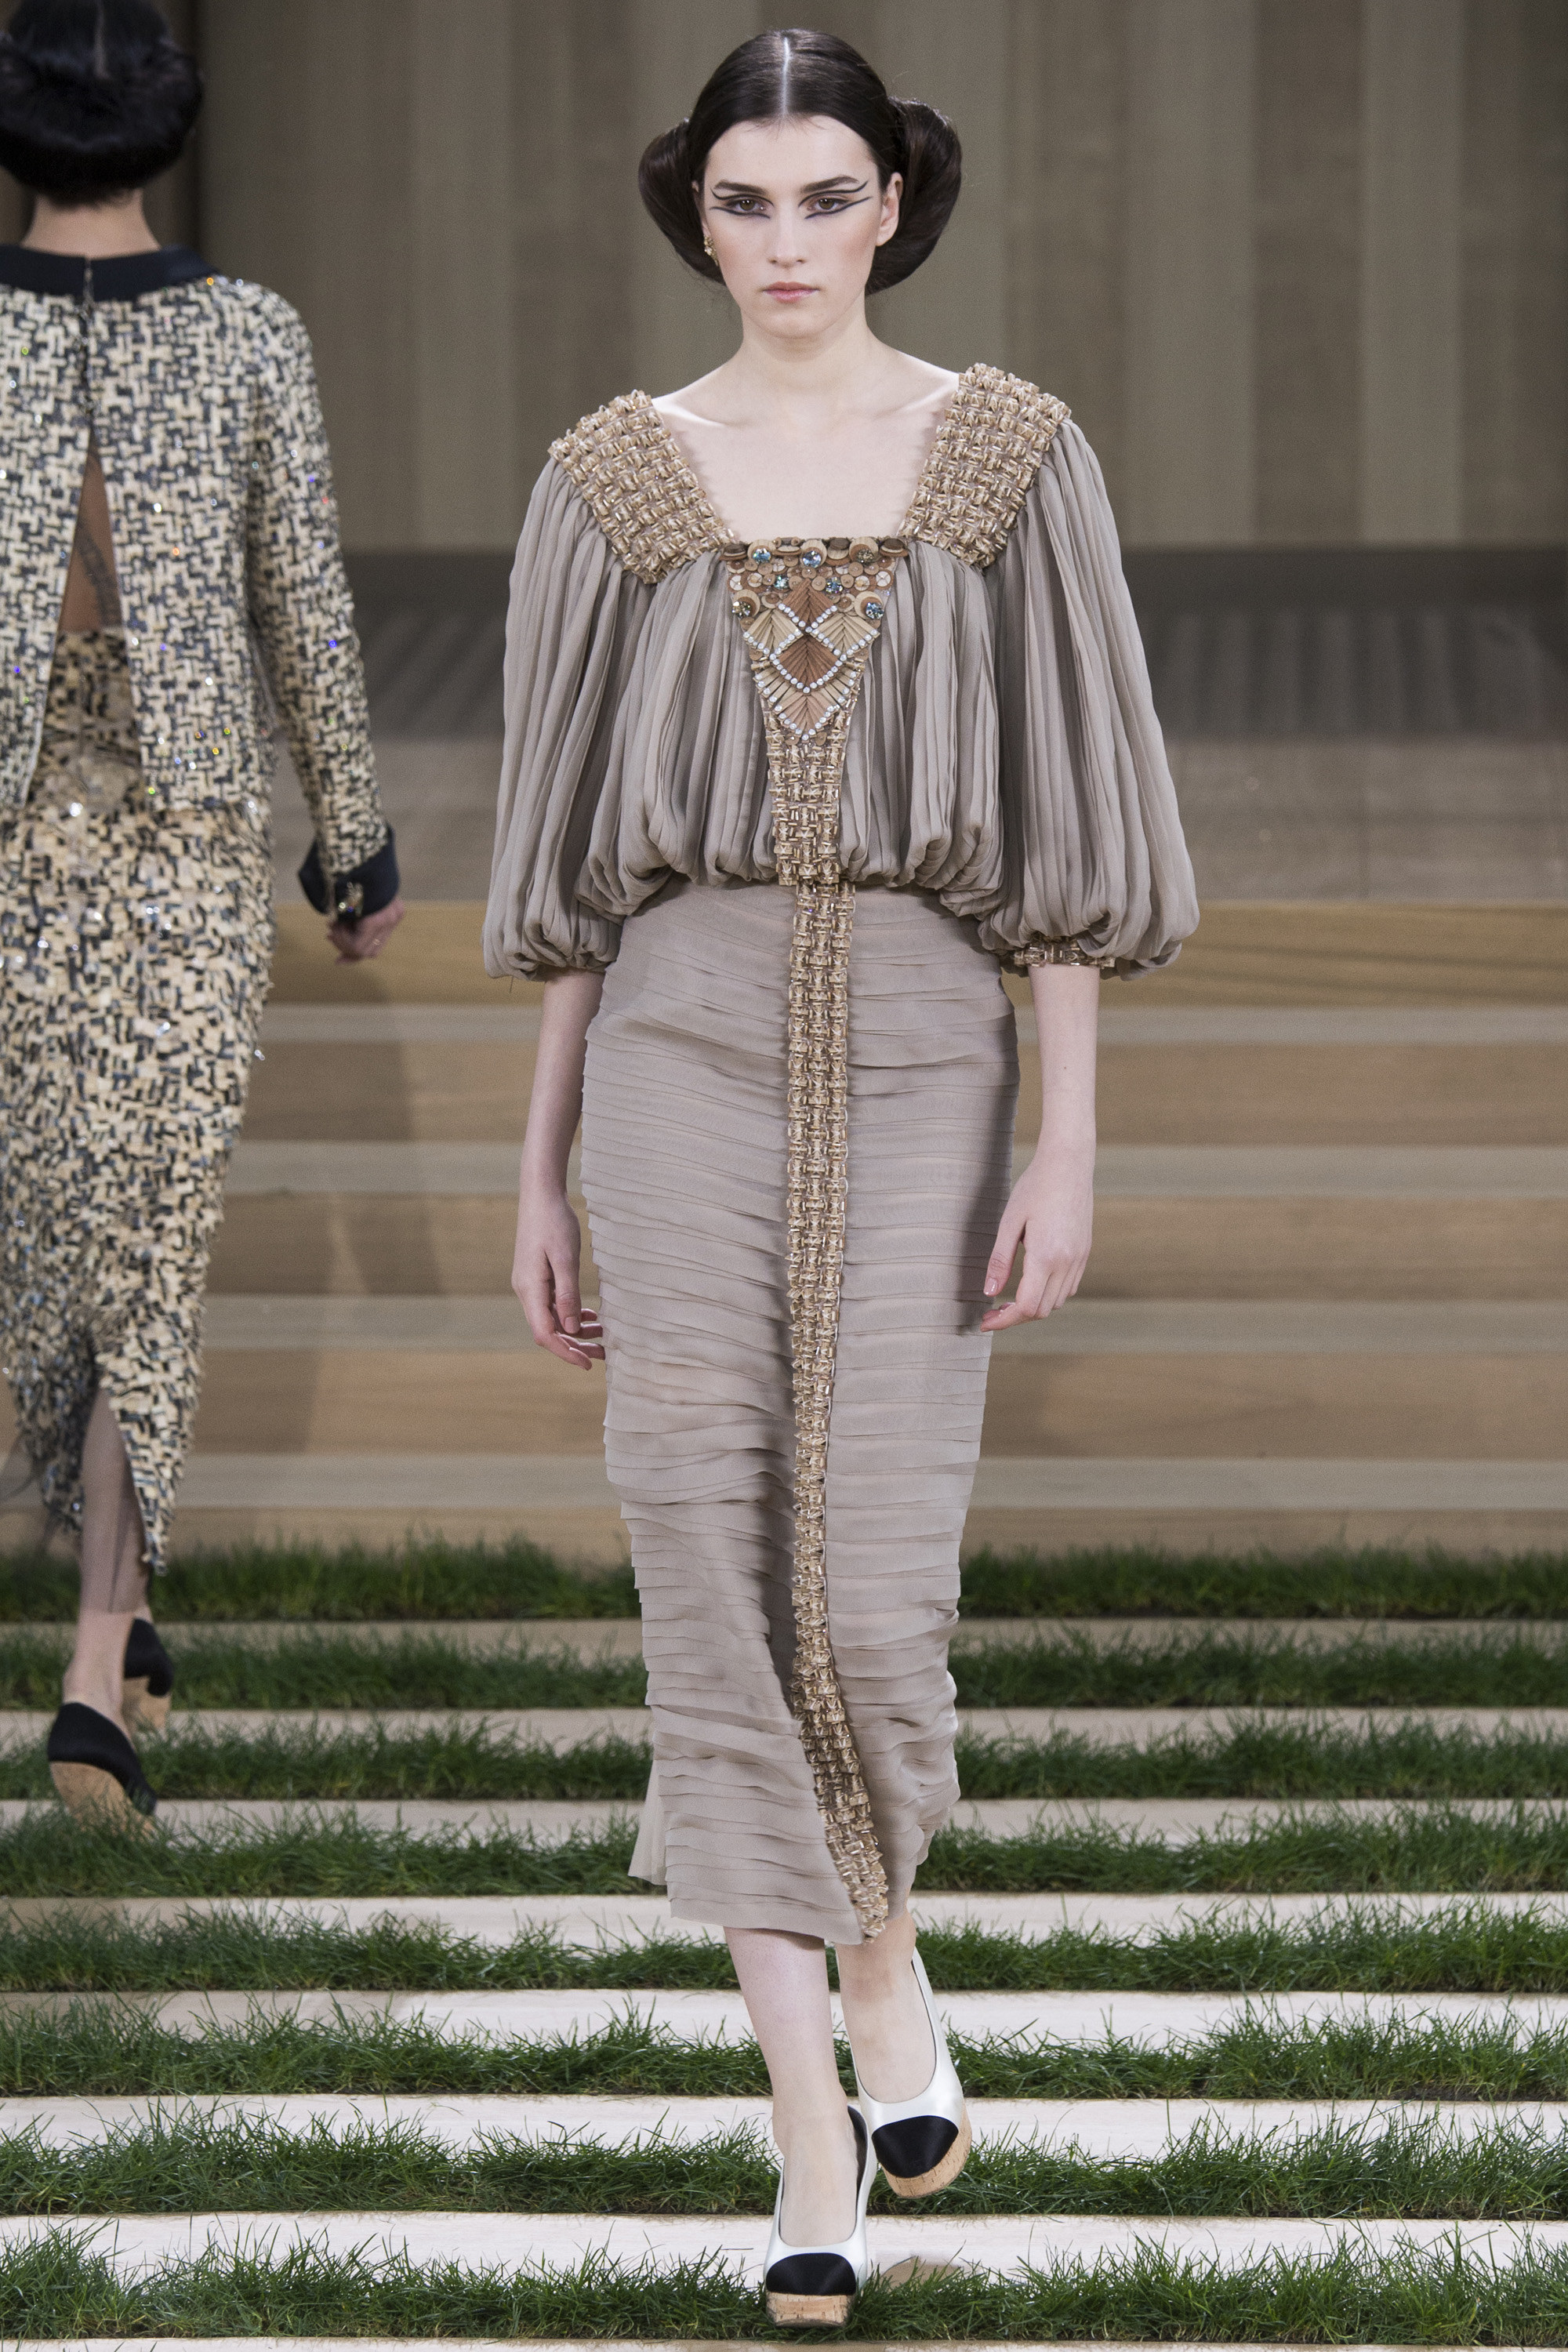 Chanel-Couture-Spring-2016-Paris-Fashion-Week-10.jpg